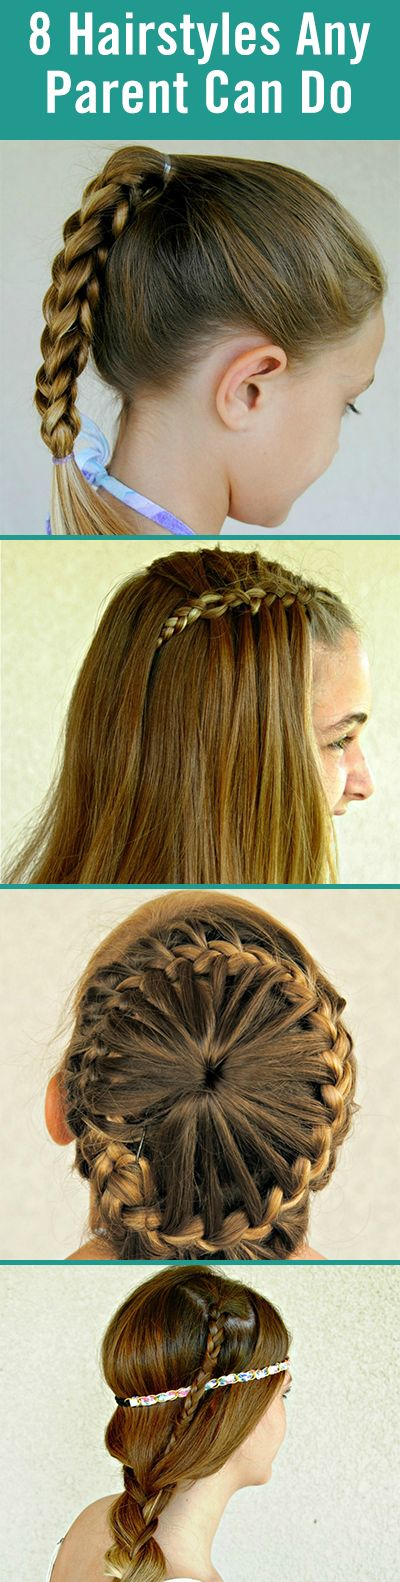 cute girls hair styles com top 25 best easy kid hairstyles ideas on 4785 | 4c822d4351ec8570c3c8f89cf27fd2ed super cute hairstyles easy hairstyles